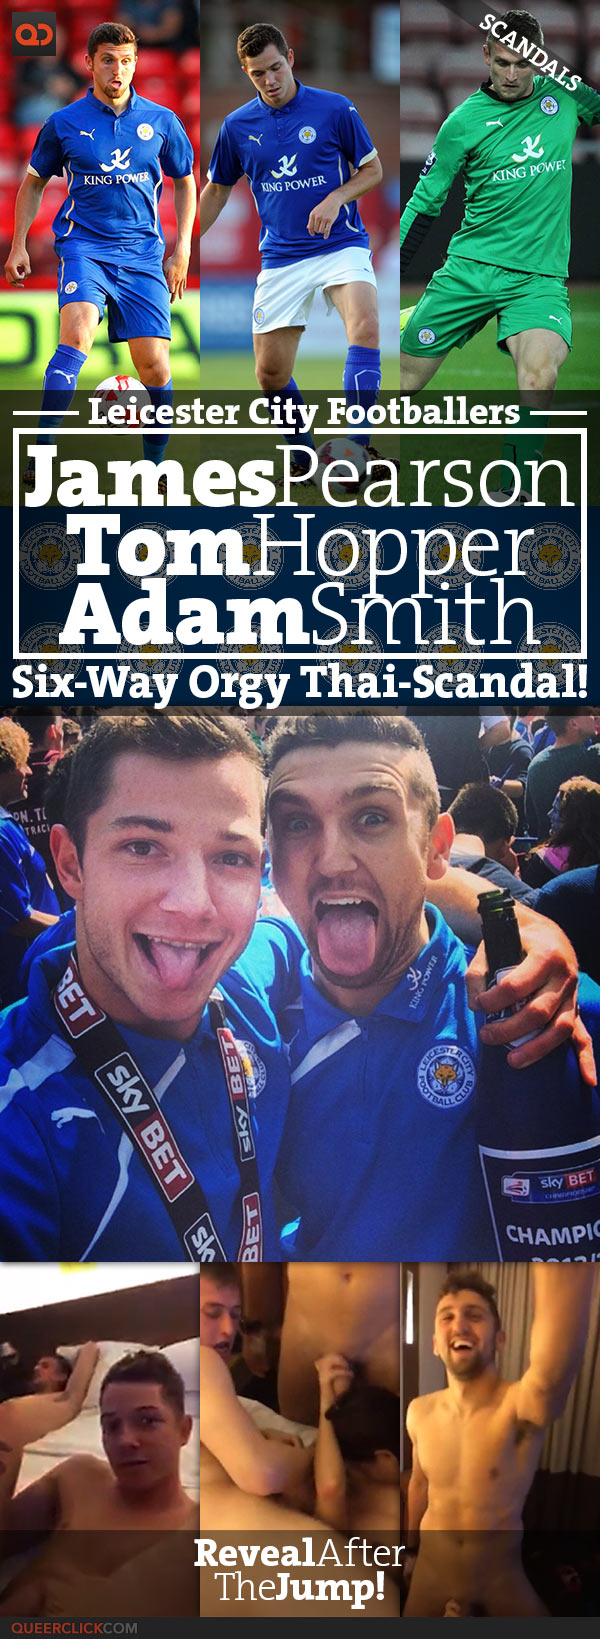 QC Scandals: Three Leicester City Footballers, James Pearson, Tom Hopper And Adam Smith, Caught In A Six-Way Orgy During Thailand Trip!